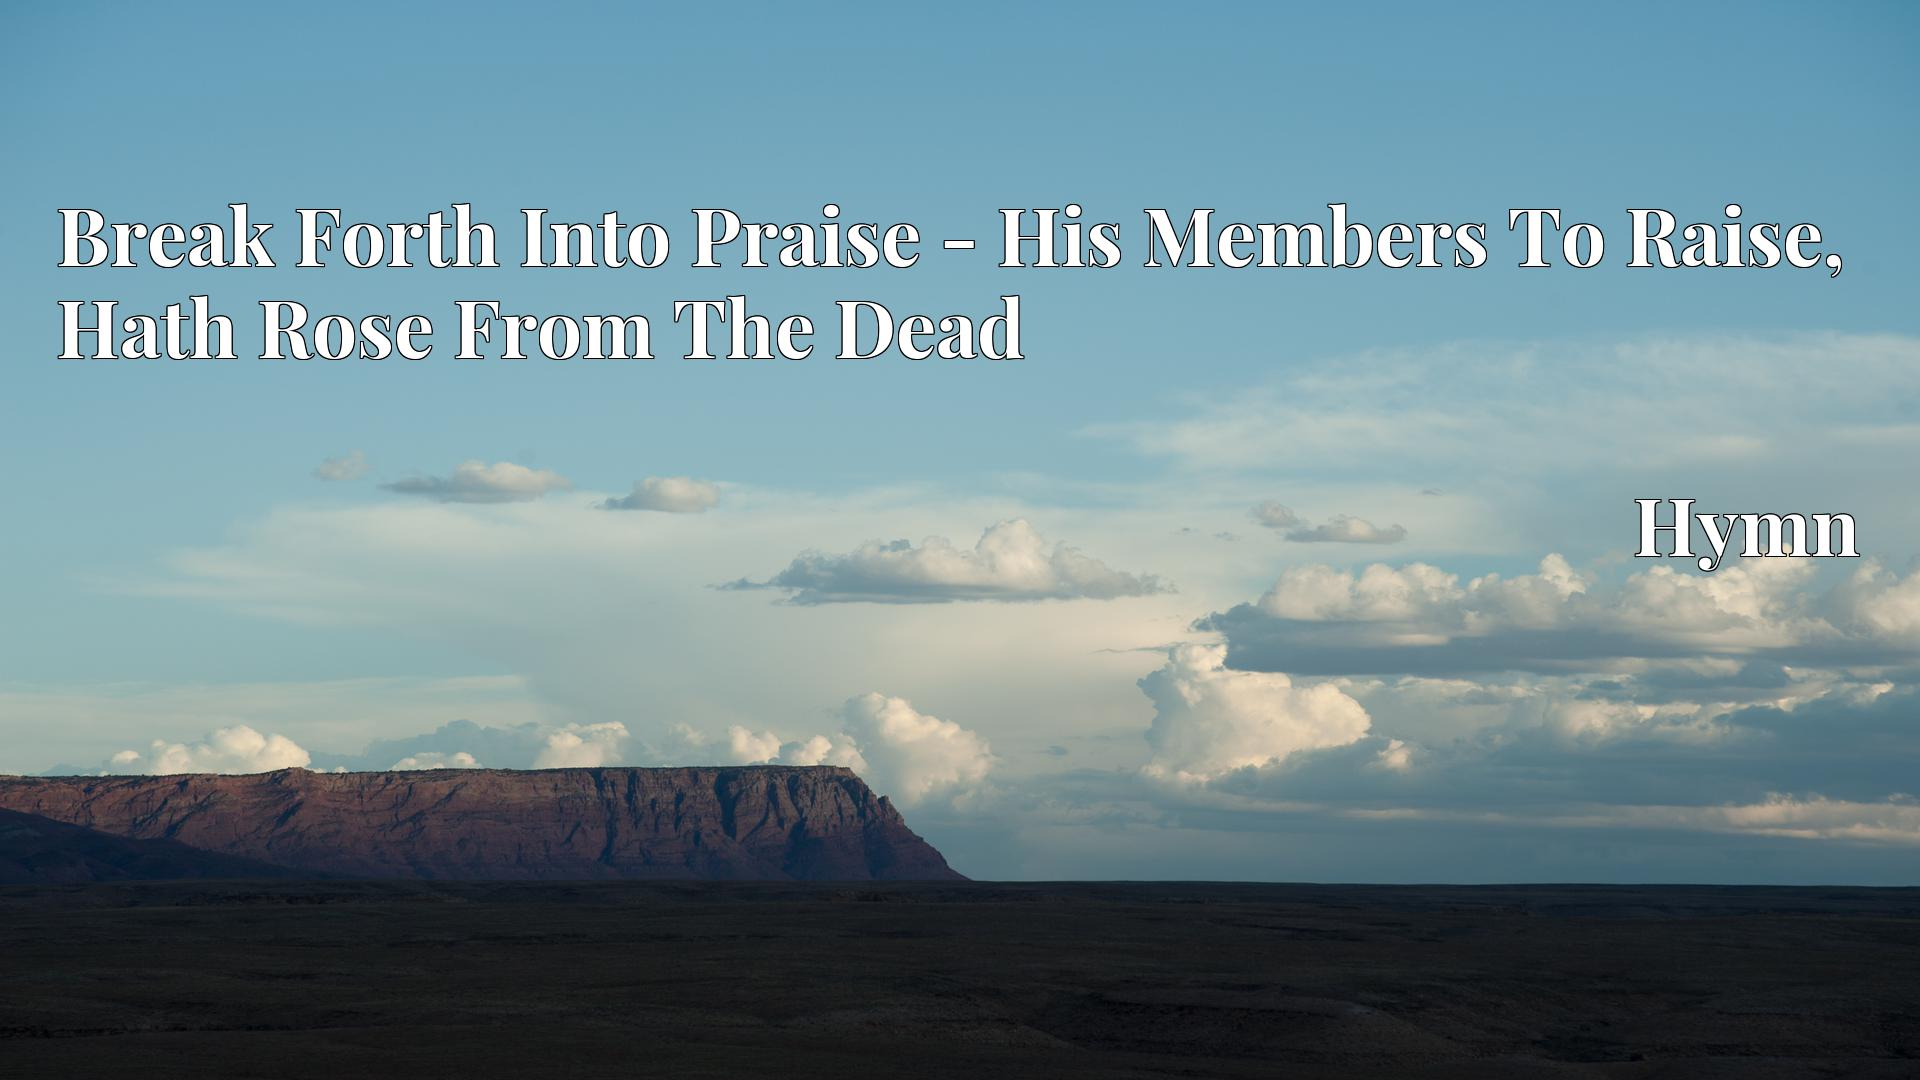 Break Forth Into Praise - His Members To Raise, Hath Rose From The Dead Hymn